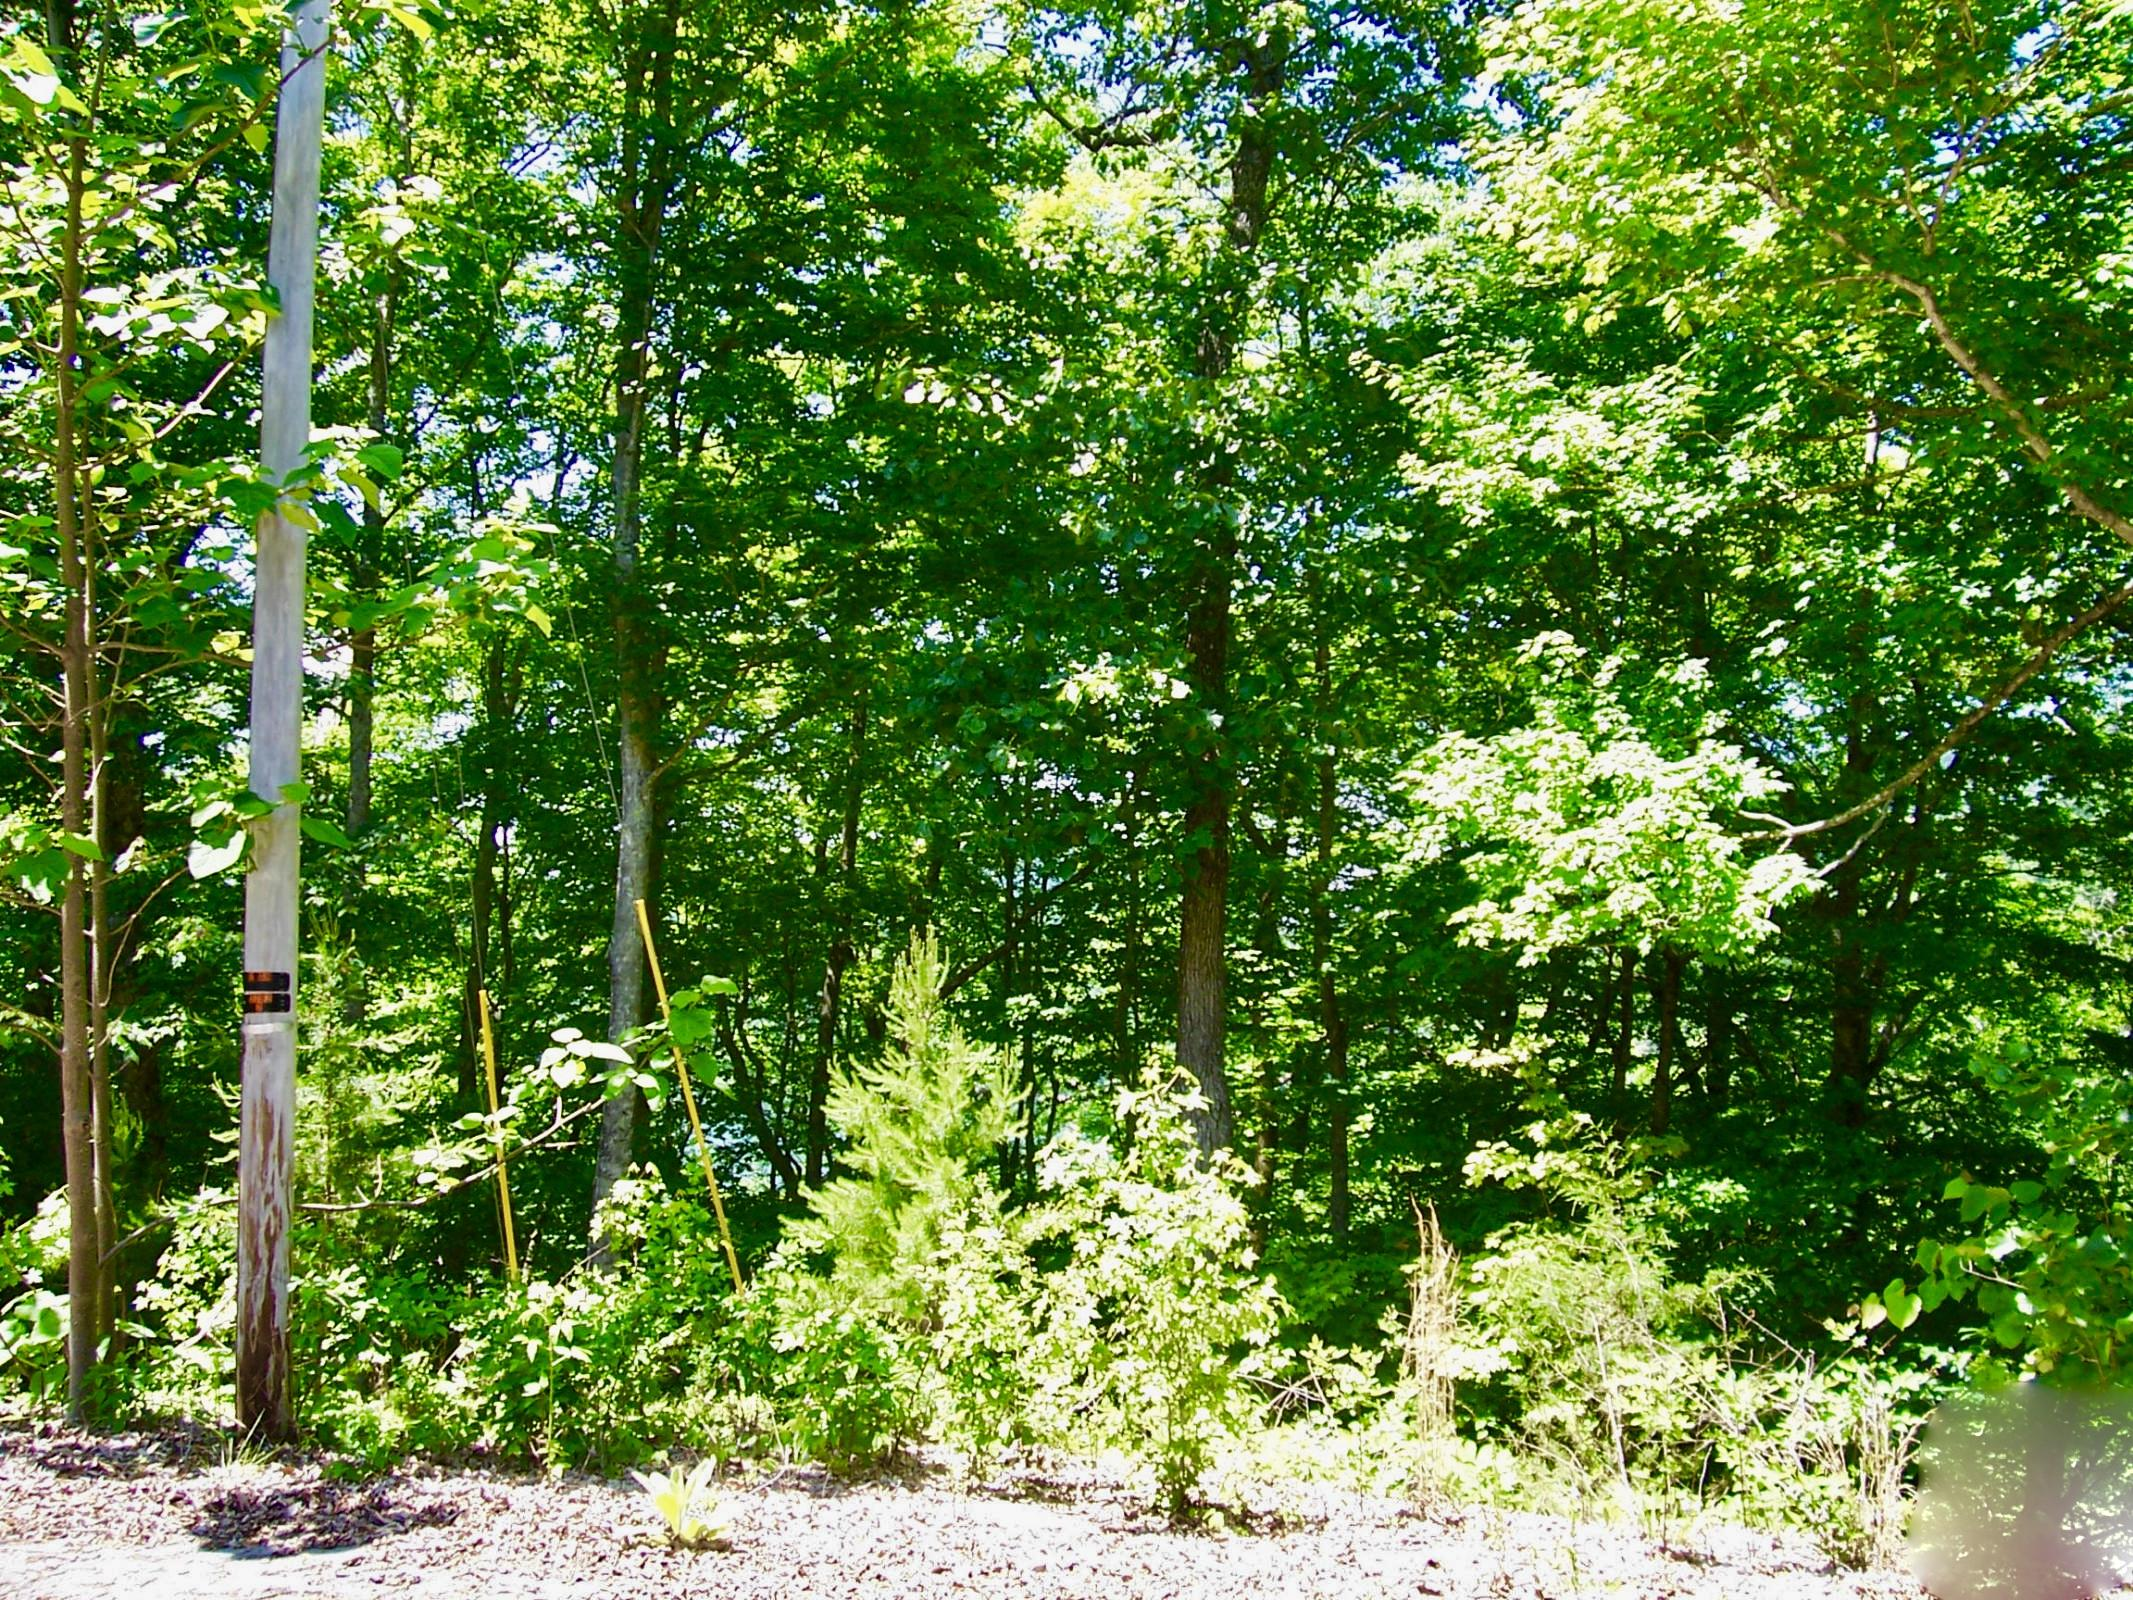 Lot 831 Jacks Bluff Rd: